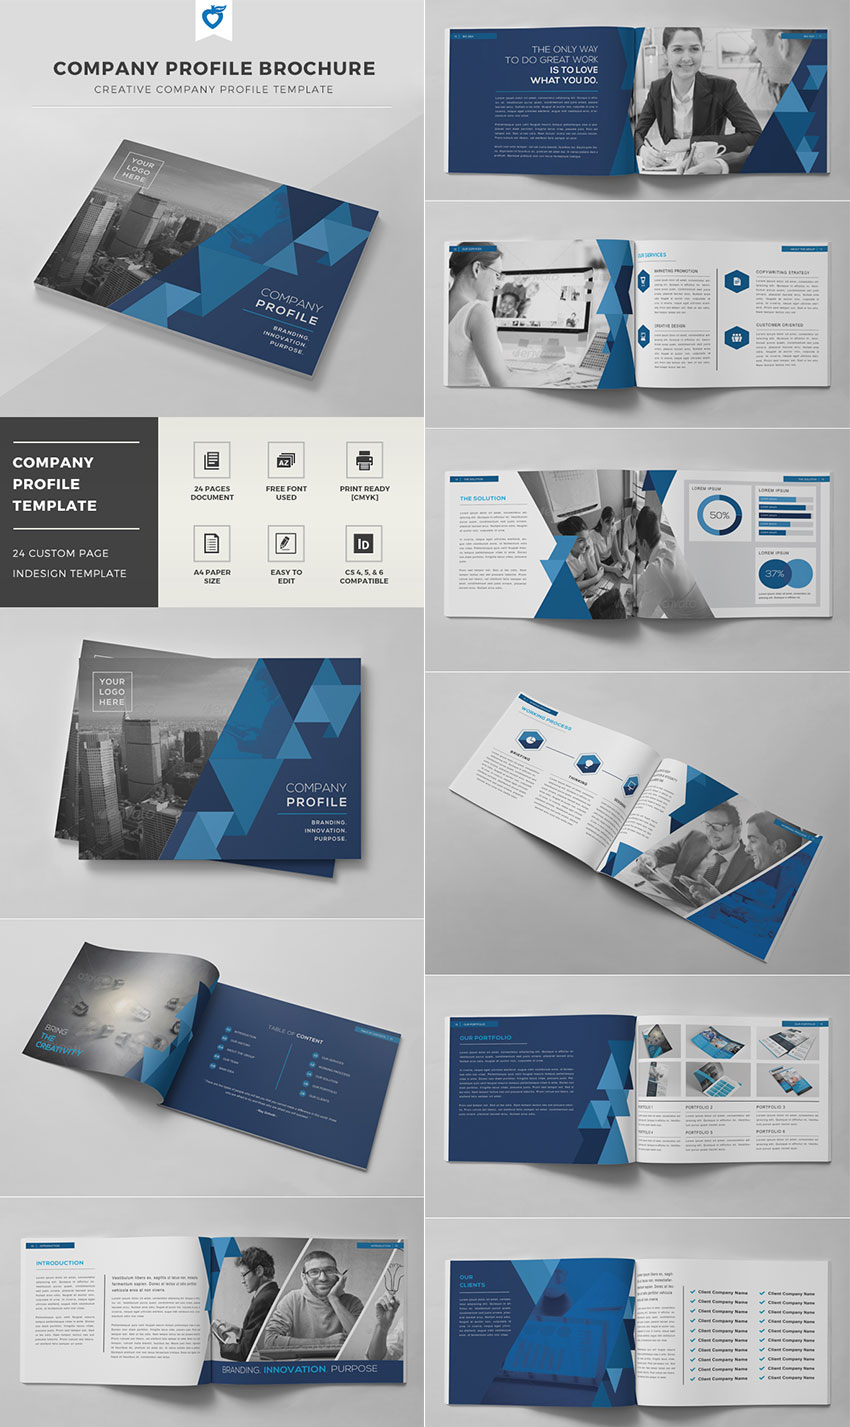 Best InDesign Brochure Templates For Creative Business Marketing - Business brochures templates